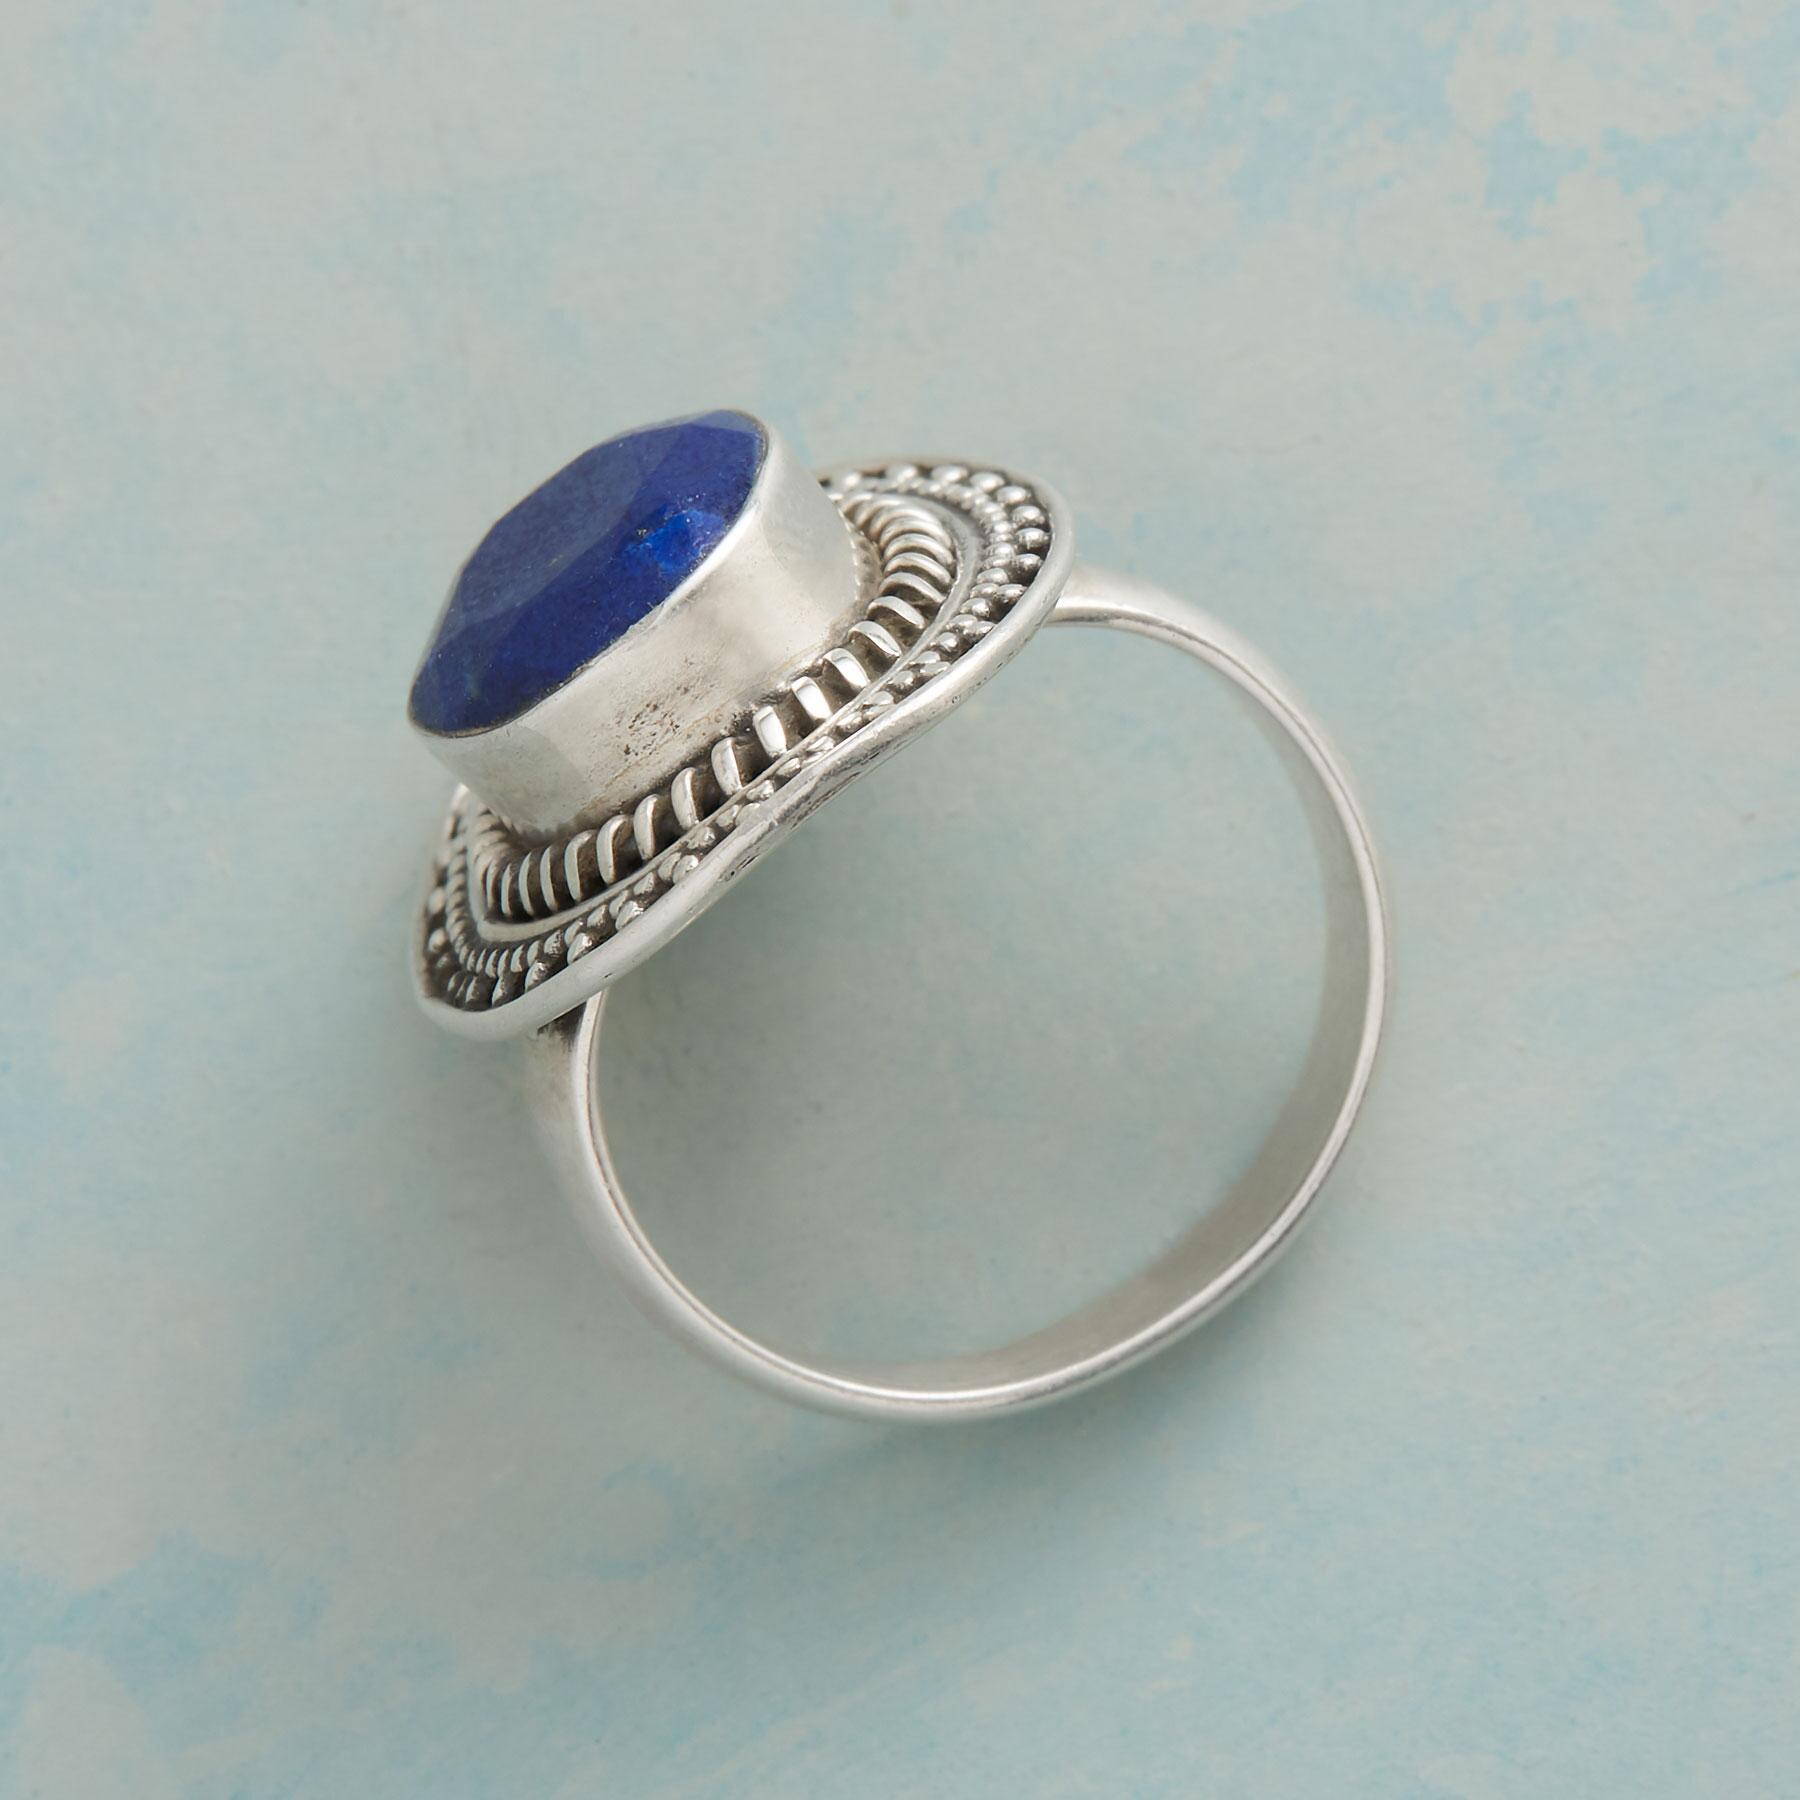 TIA RING: View 2